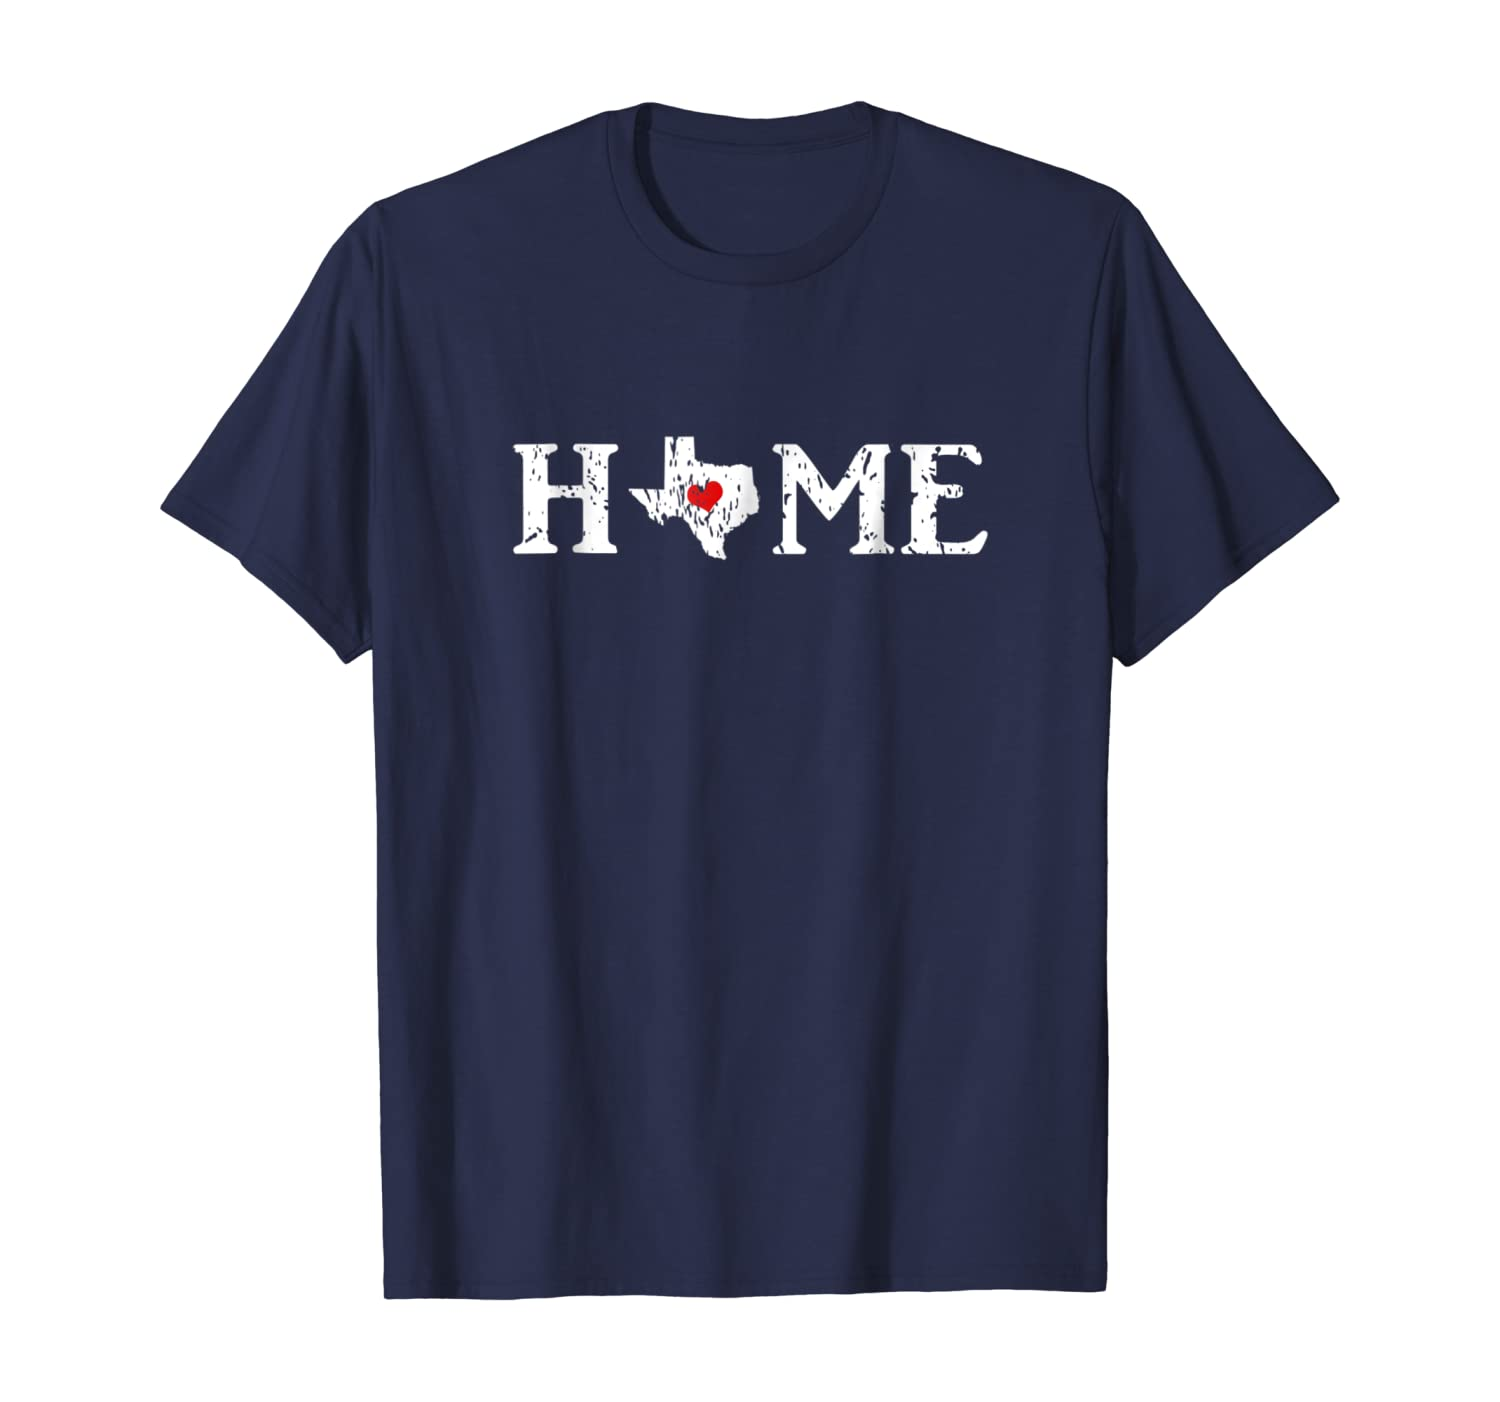 Texas is My Home T-shirt for Men and Women